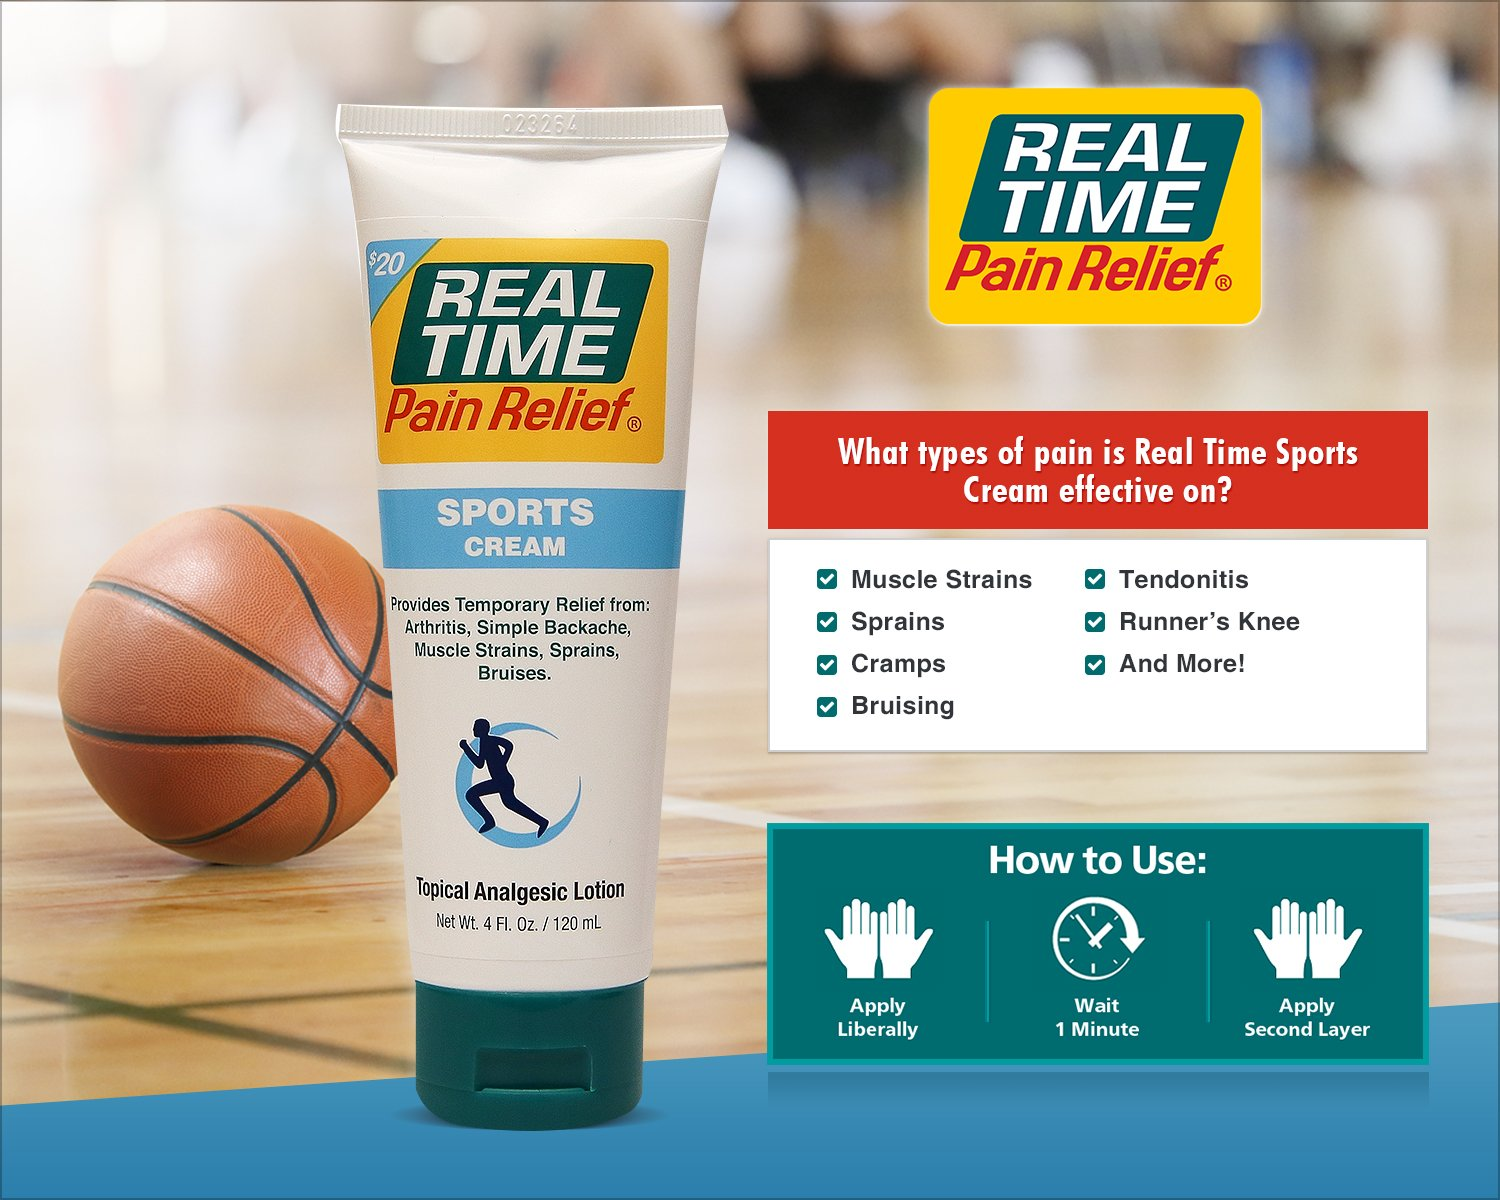 Real Time Pain Relief Stay Active Pack, Sports Cream, Daily Relief, MAXX Relief, 10 Pain Cream Travel Packs by Real Time Pain Relief (Image #3)